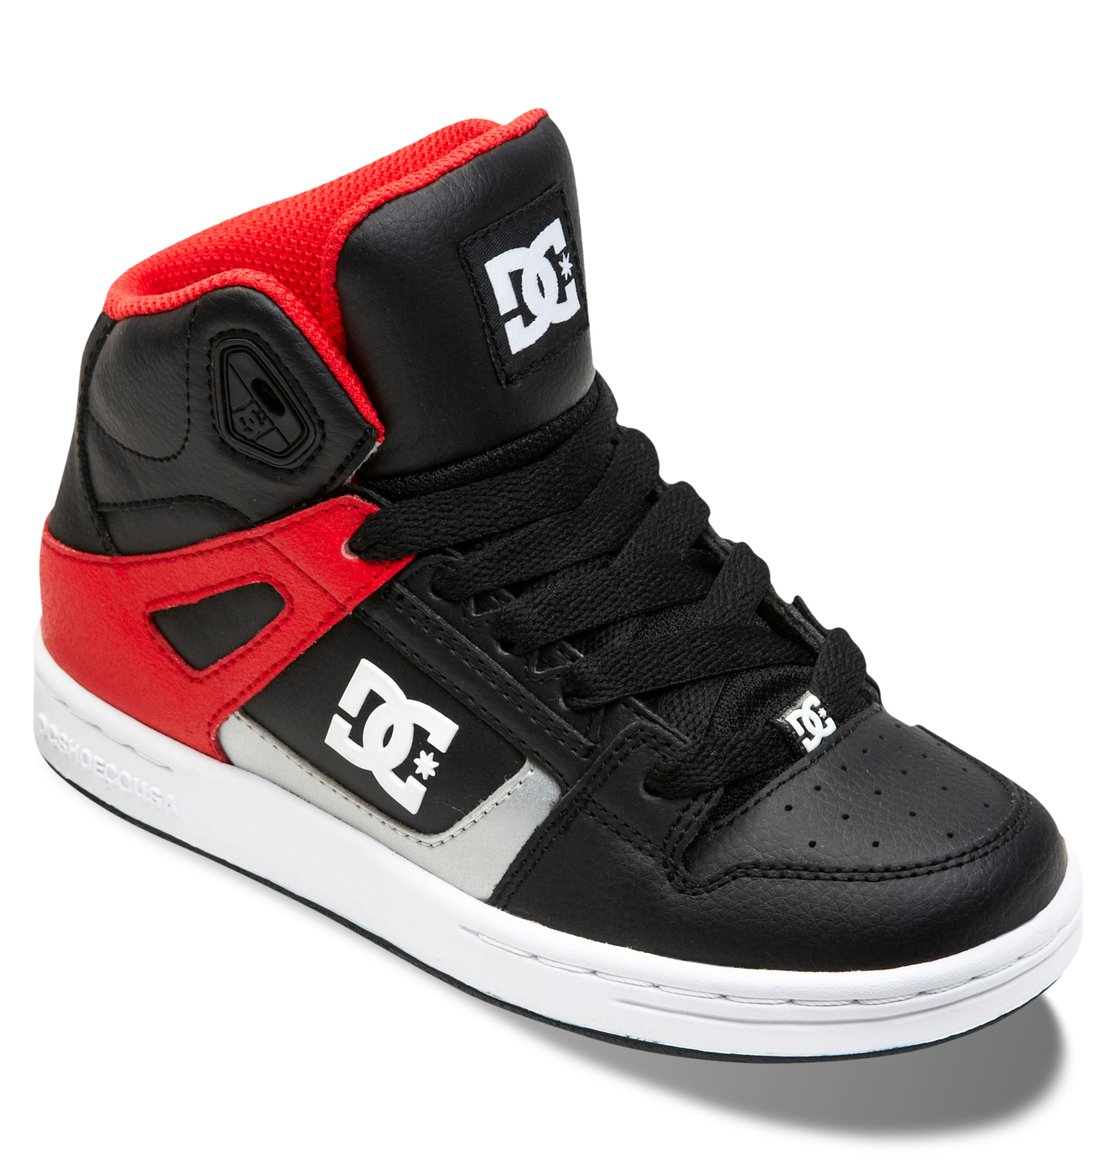 High Tops Sale: Save Up to 60% Off! Shop getson.ga's huge selection of High Tops - Over styles available. FREE Shipping & Exchanges, and a % price guarantee!